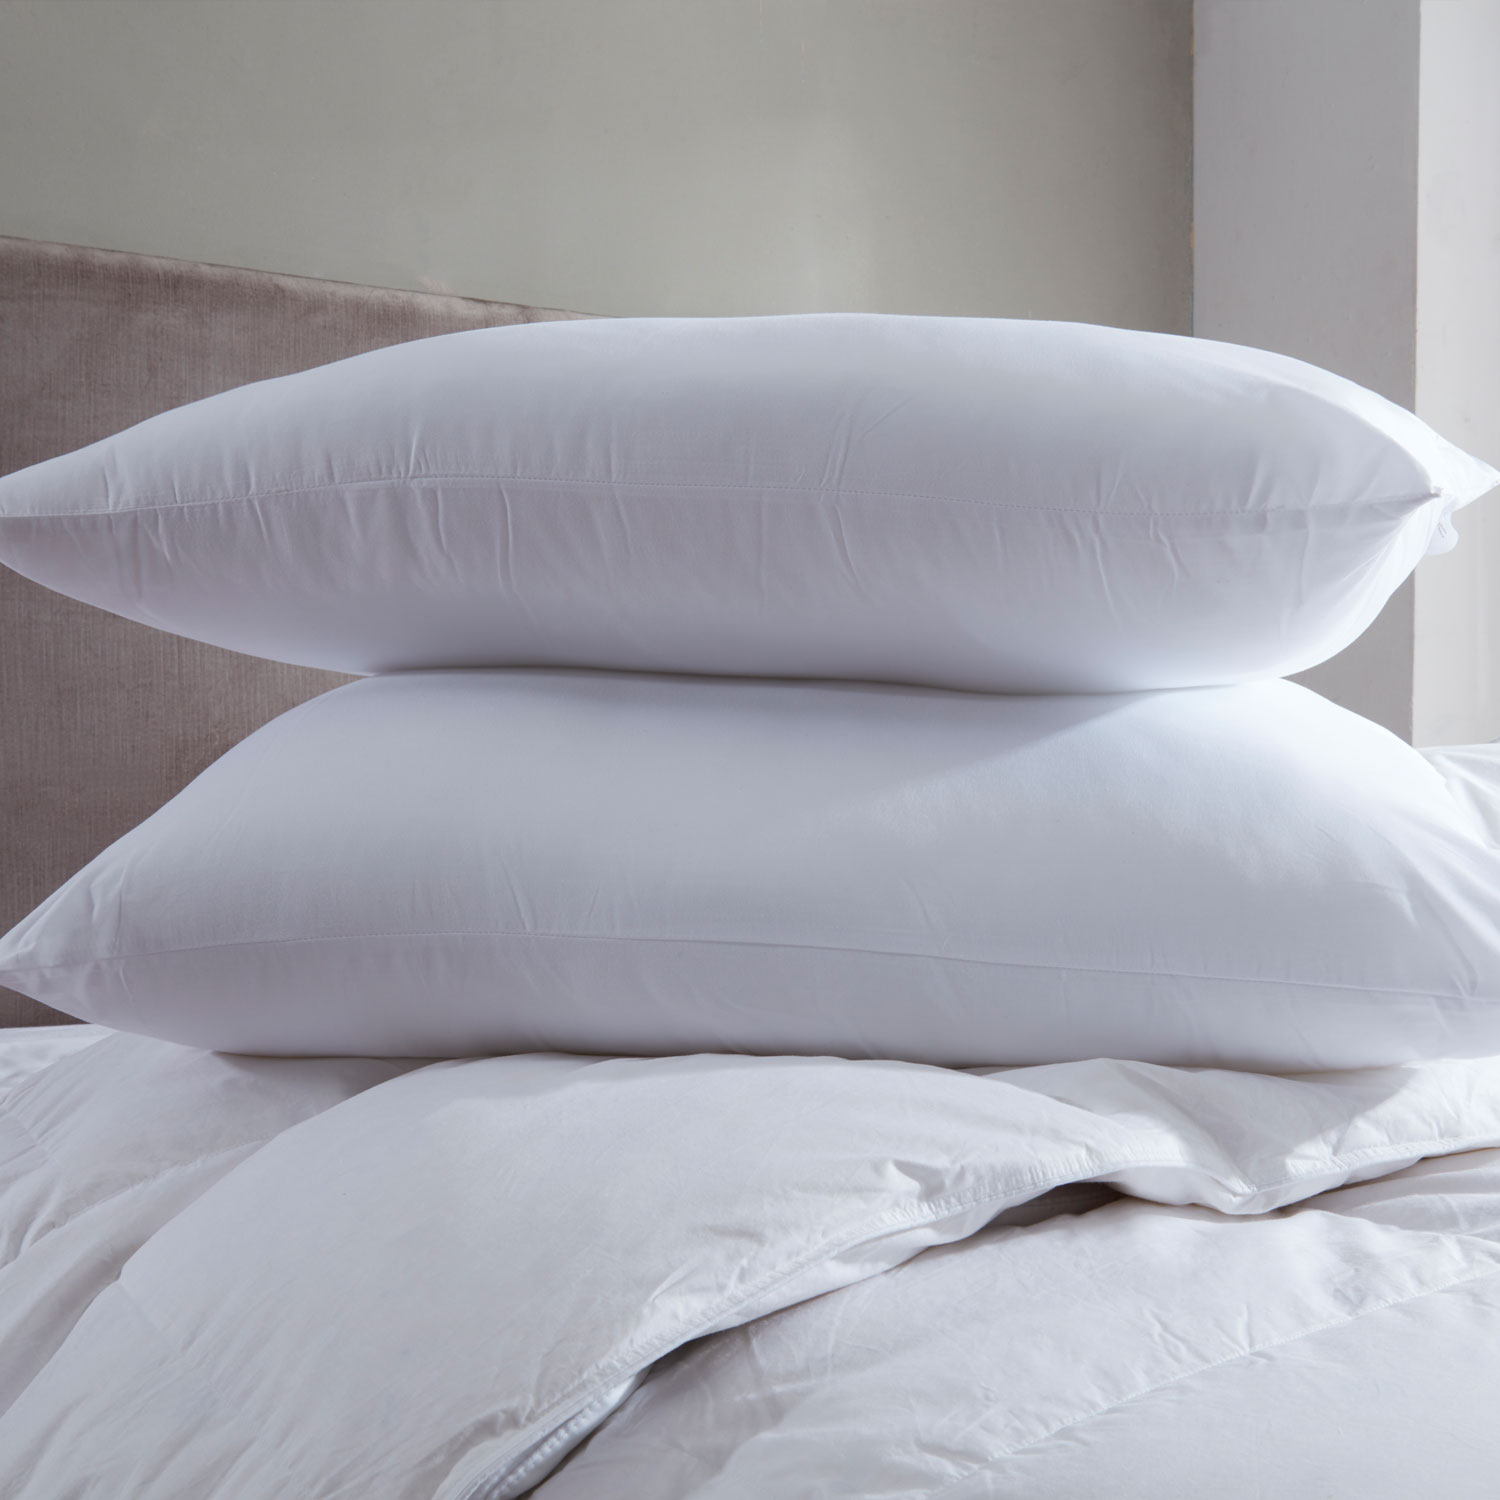 Bounce Back Pillow - Medium Firm Support (Pair)